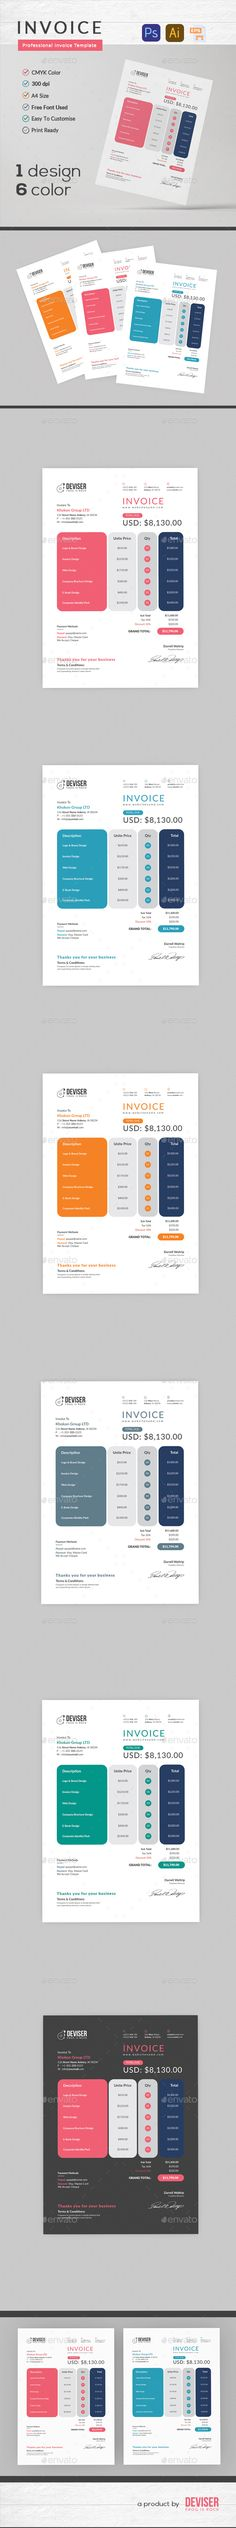 Invoice with Letterhead Letterhead - proposals templates